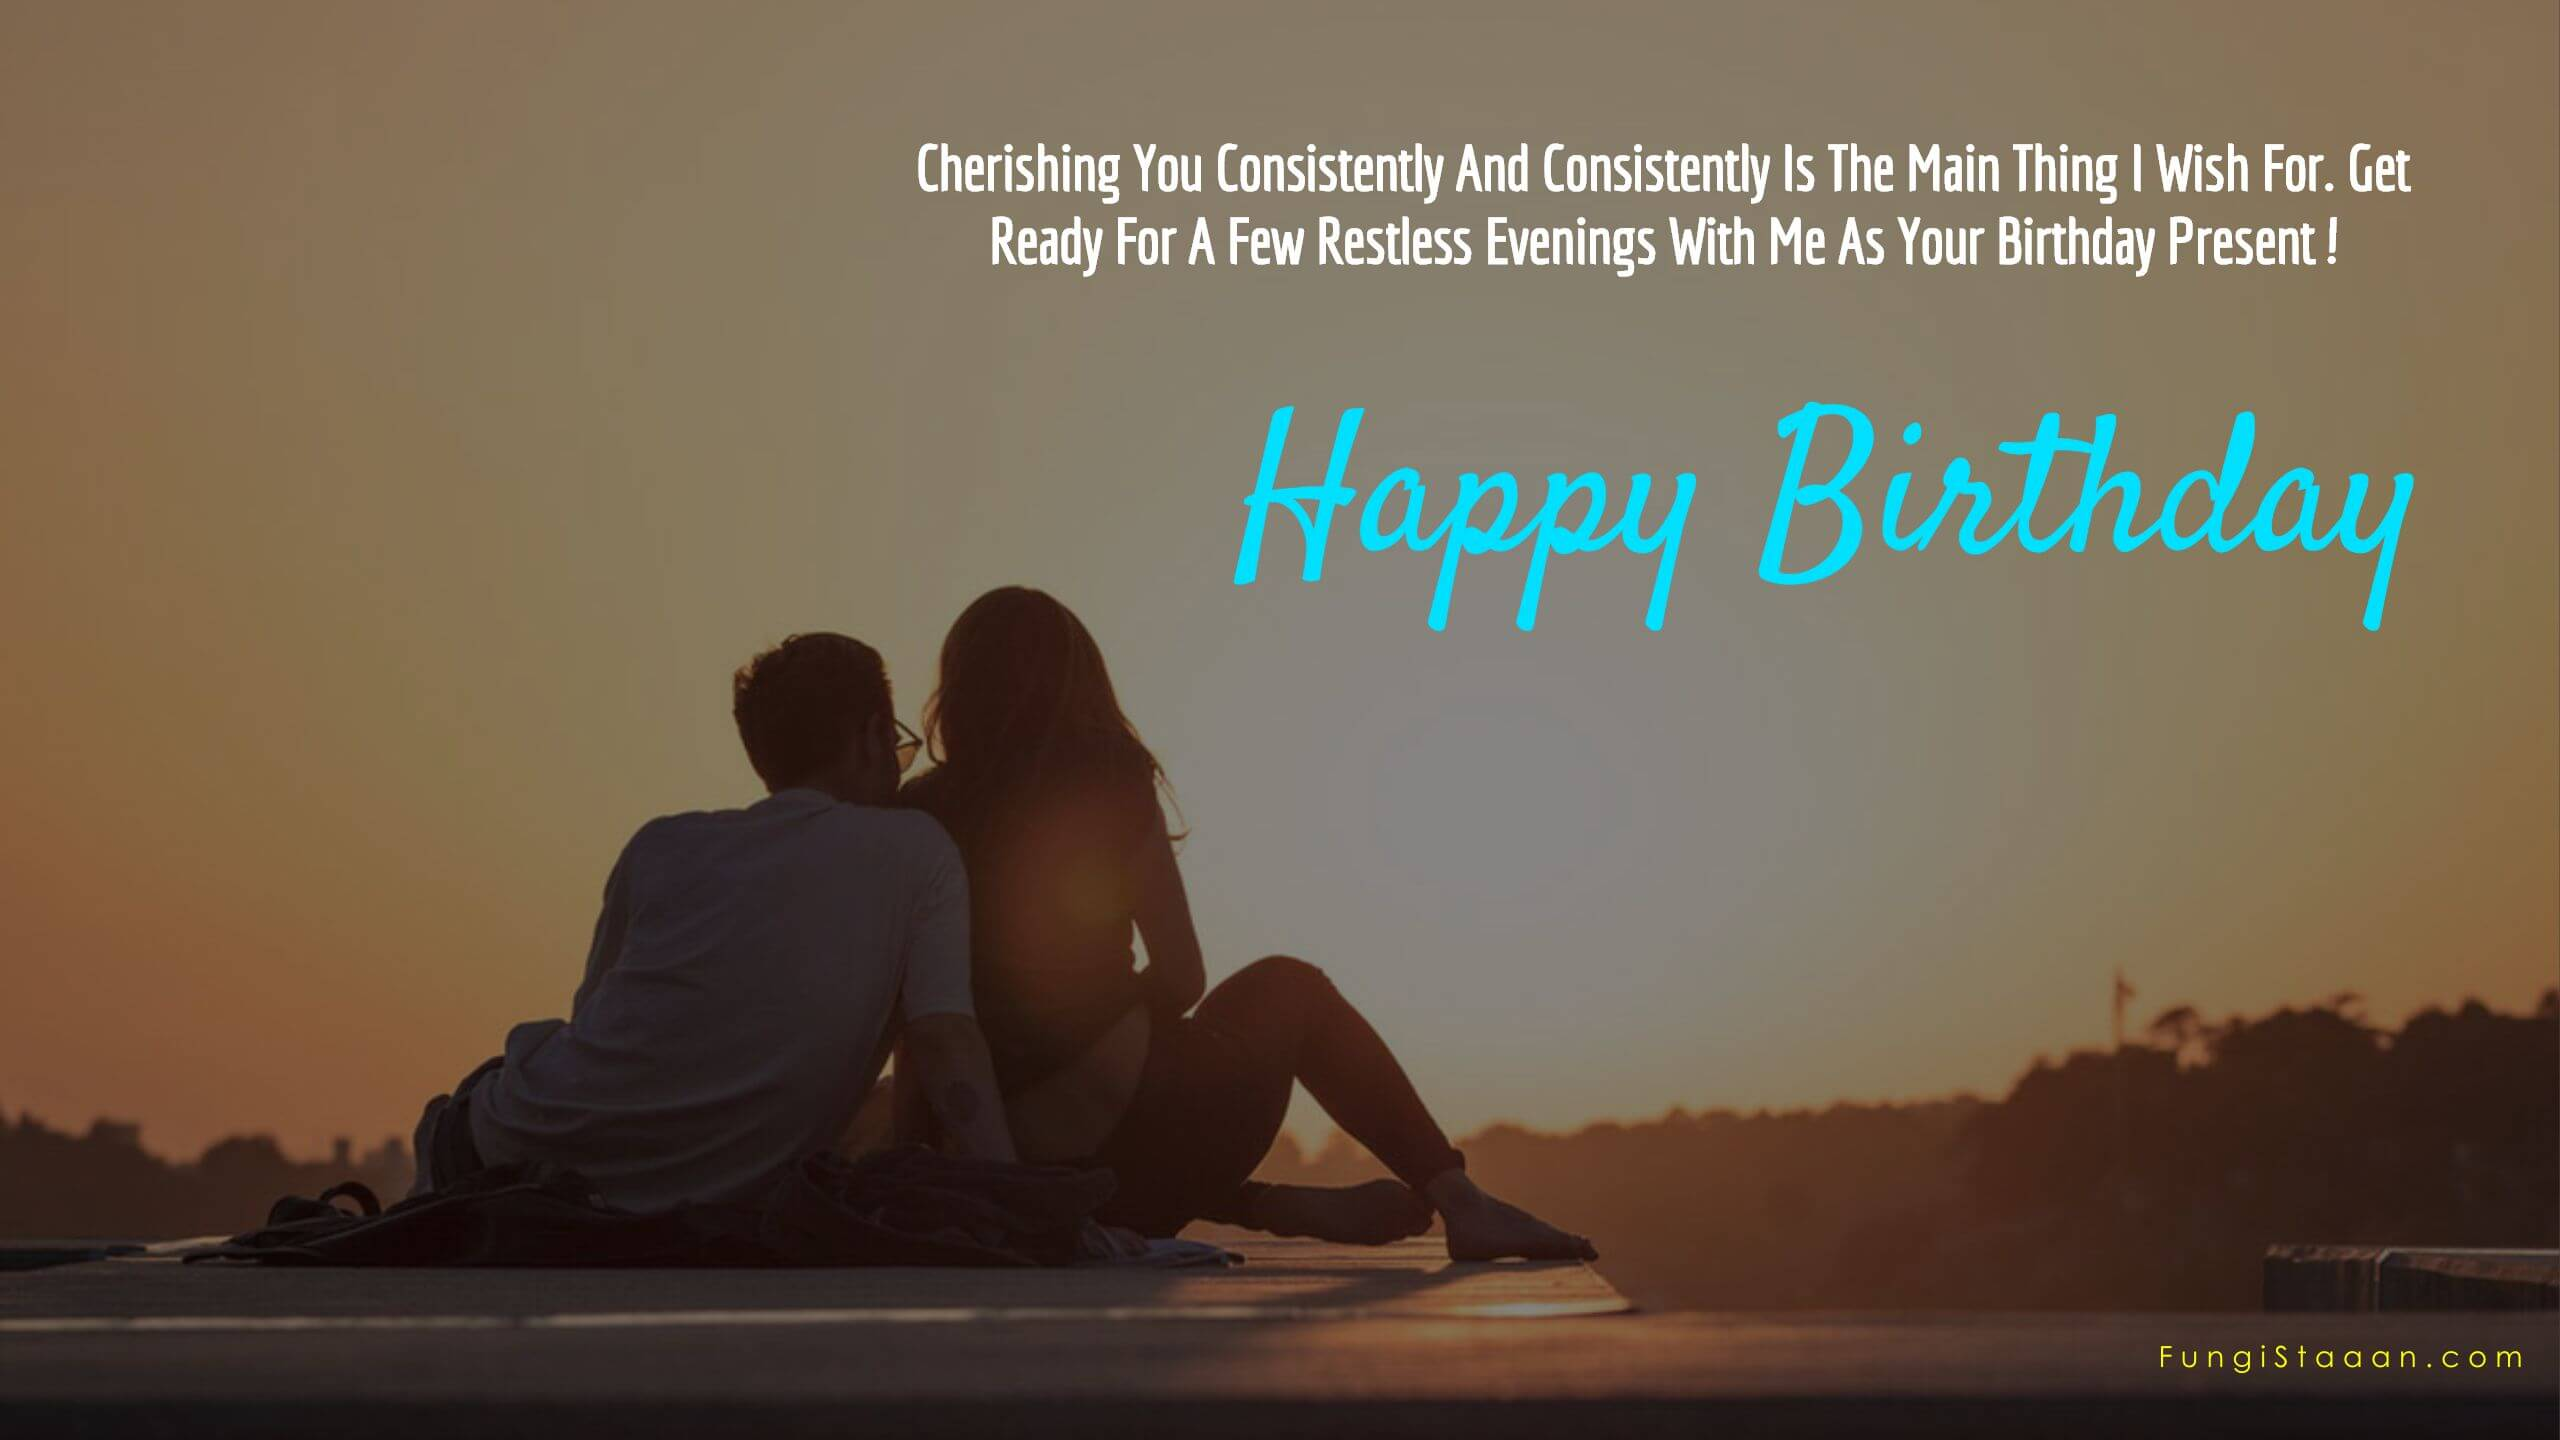 Naughty Happy Birthday Wishes Quotes MEME